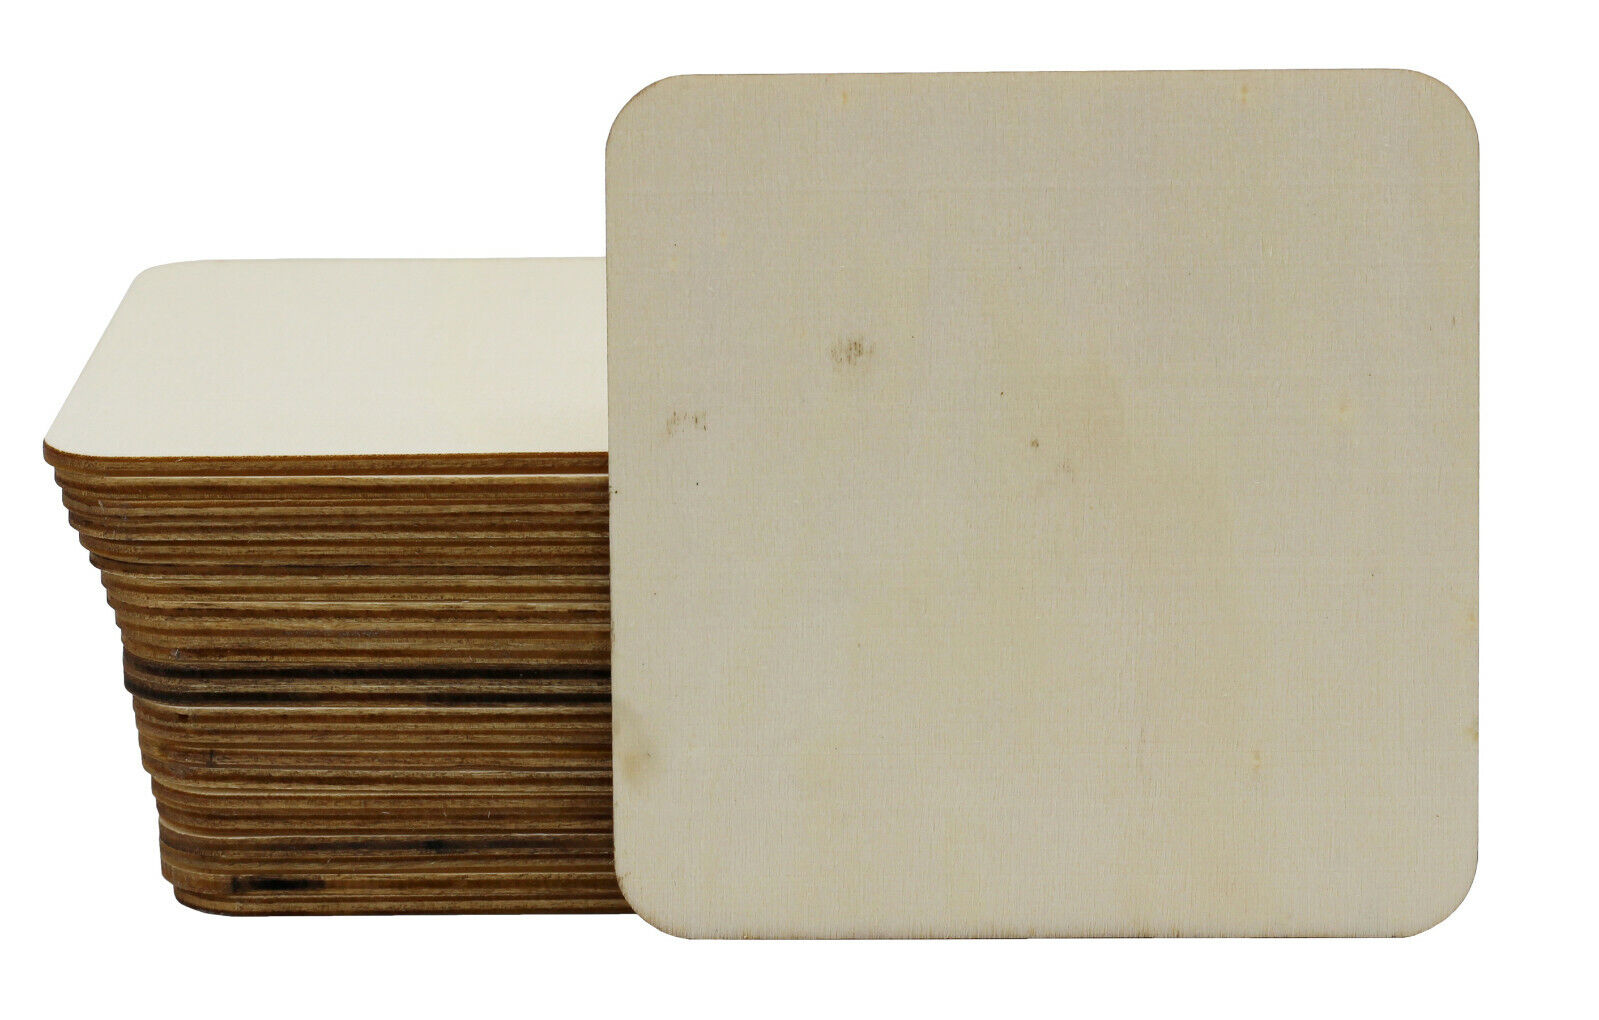 24-Pack Unfinished 4 Inch Wood Sqaure Cutouts for Crafts, Wooden Coasters, DIY Crafting Pieces